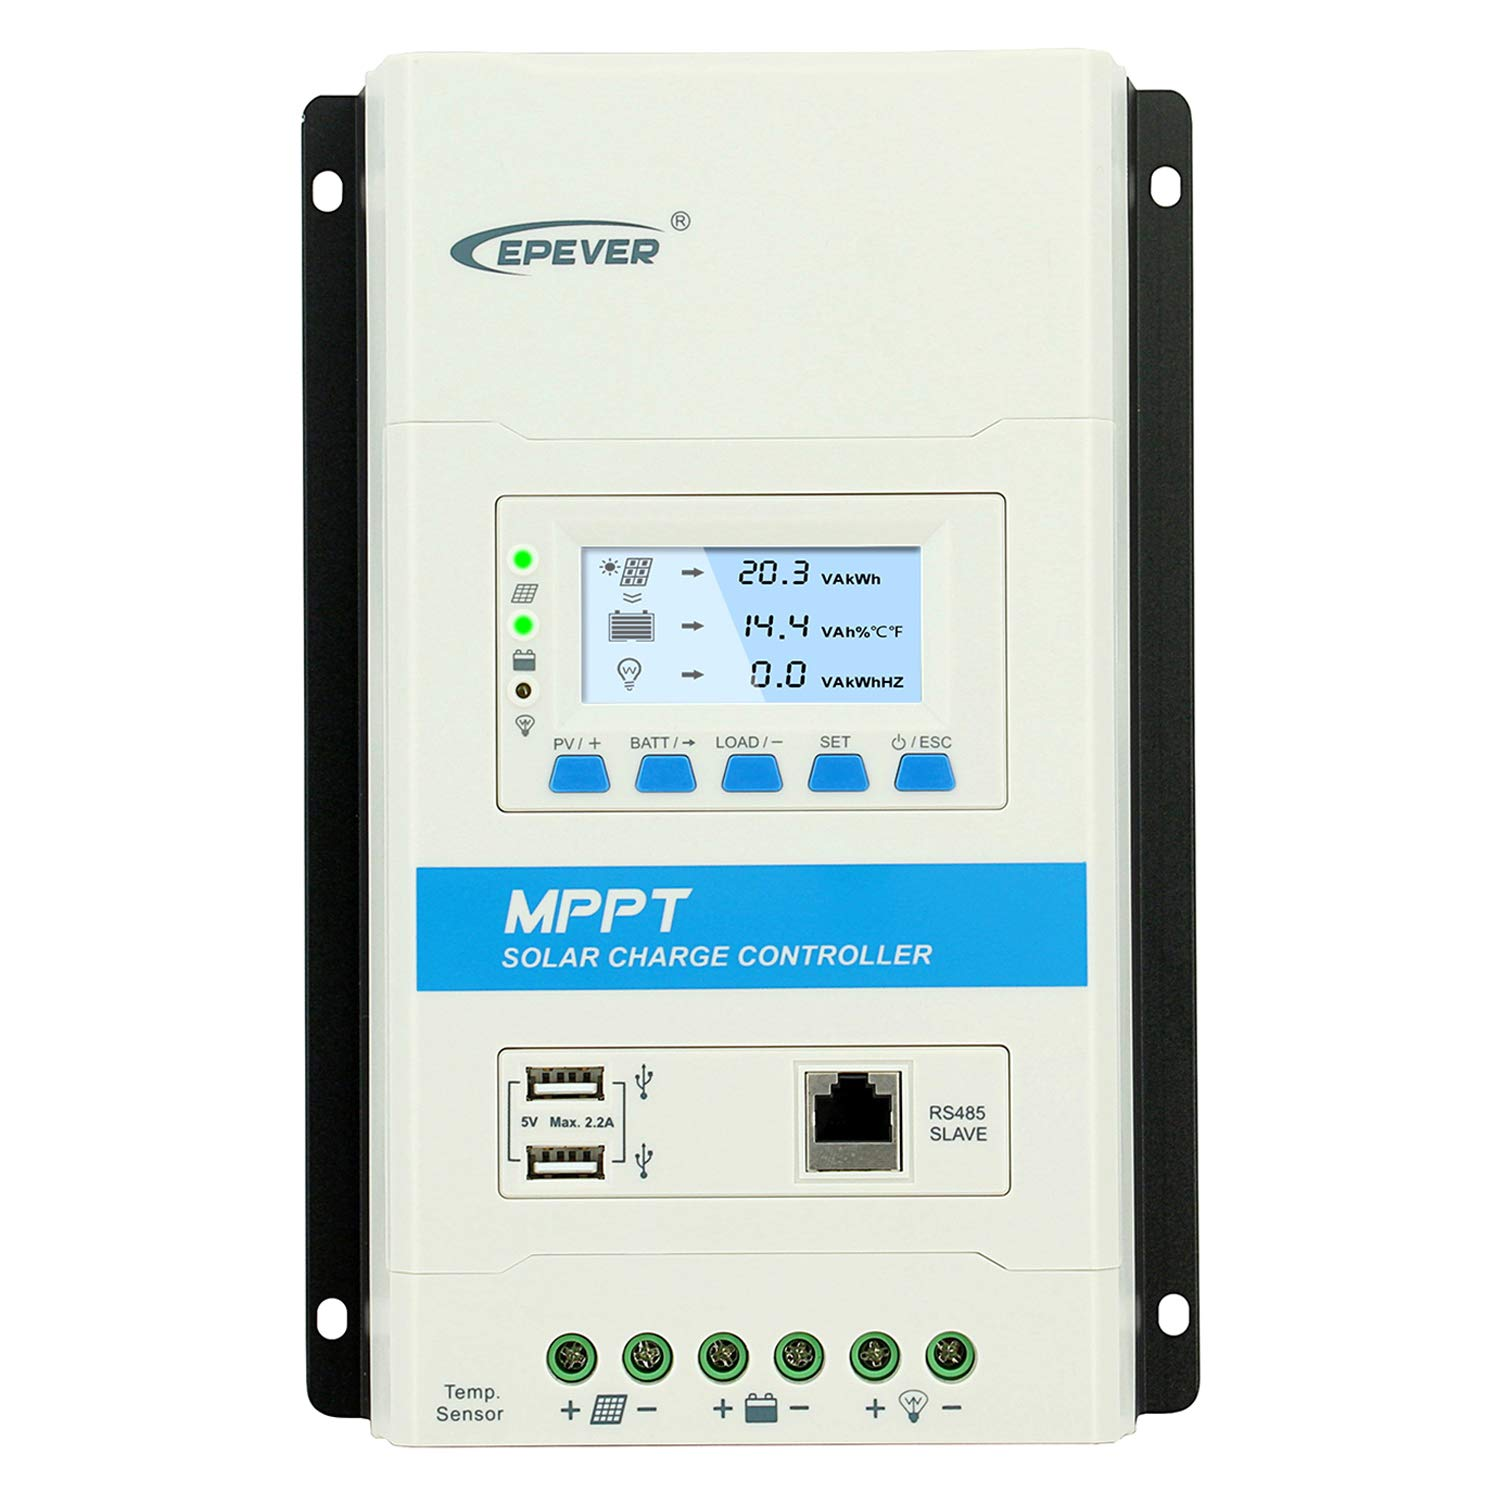 EPEVER Latest MPPT 30a Solar Charge Controller, 12V 24V TRIRON 3210N Intelligent Modular-Designed Regulator with Software Moblie APP Updated Version of Tracer A an Series